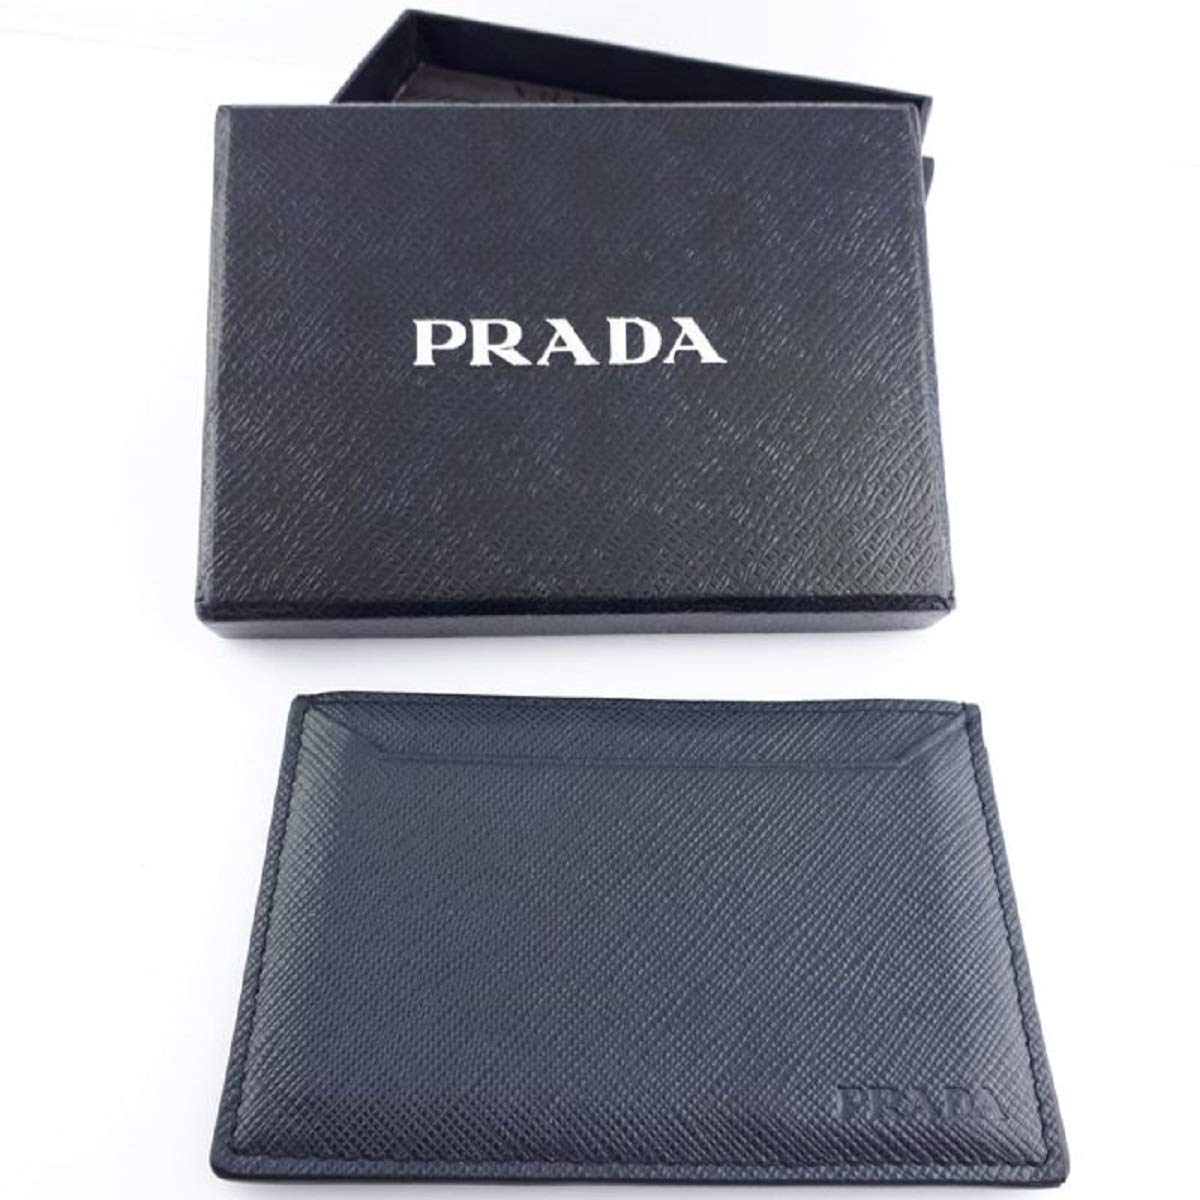 869f0610cc Prada Baltico Navy Saffiano Men's Leather Wallet Credit Card Holder ...